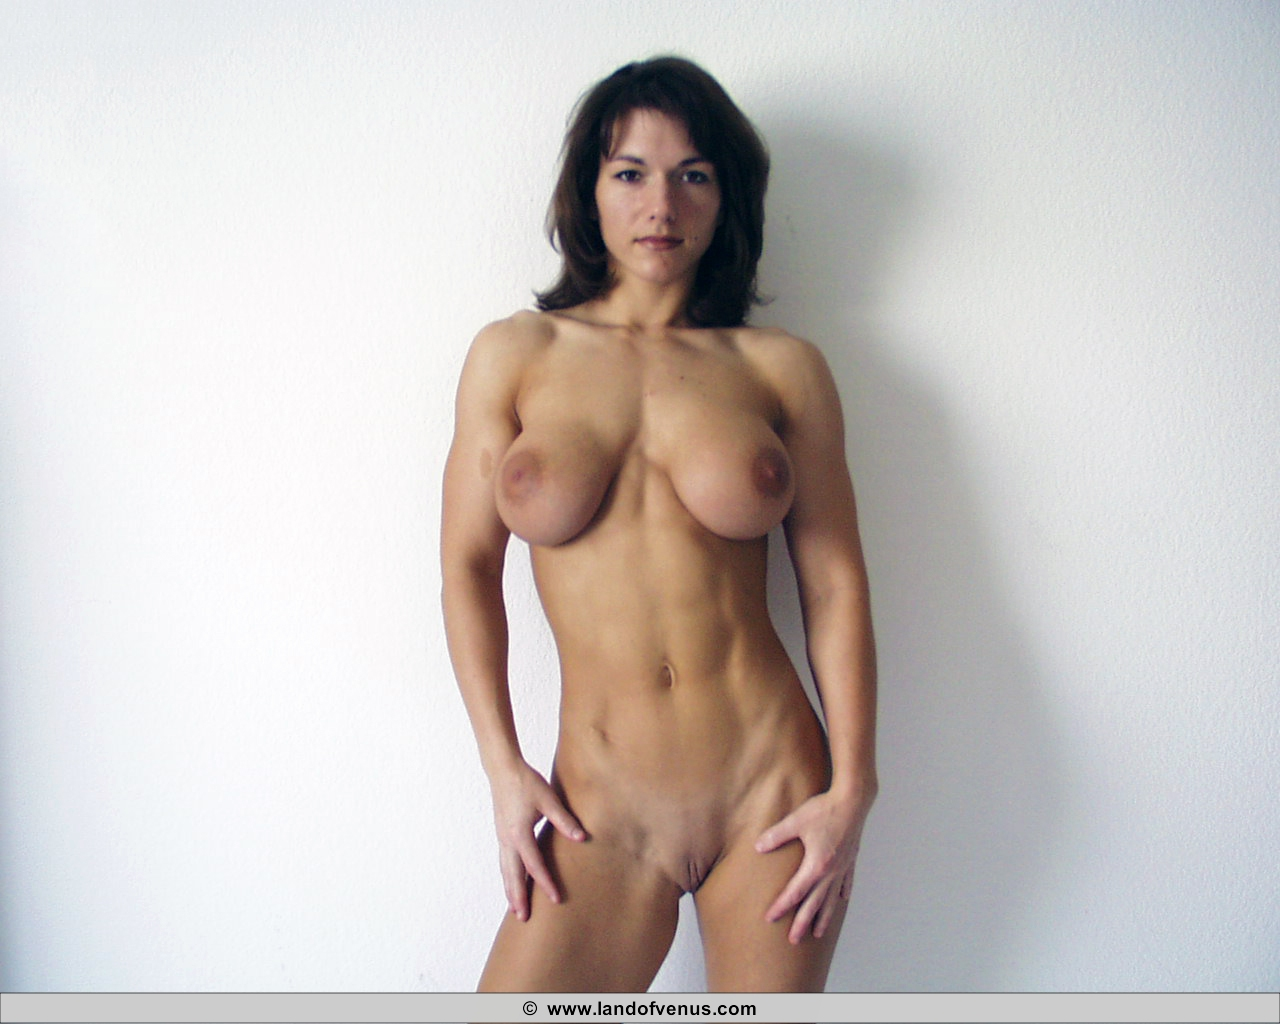 Congratulate, full figure naked women pic the